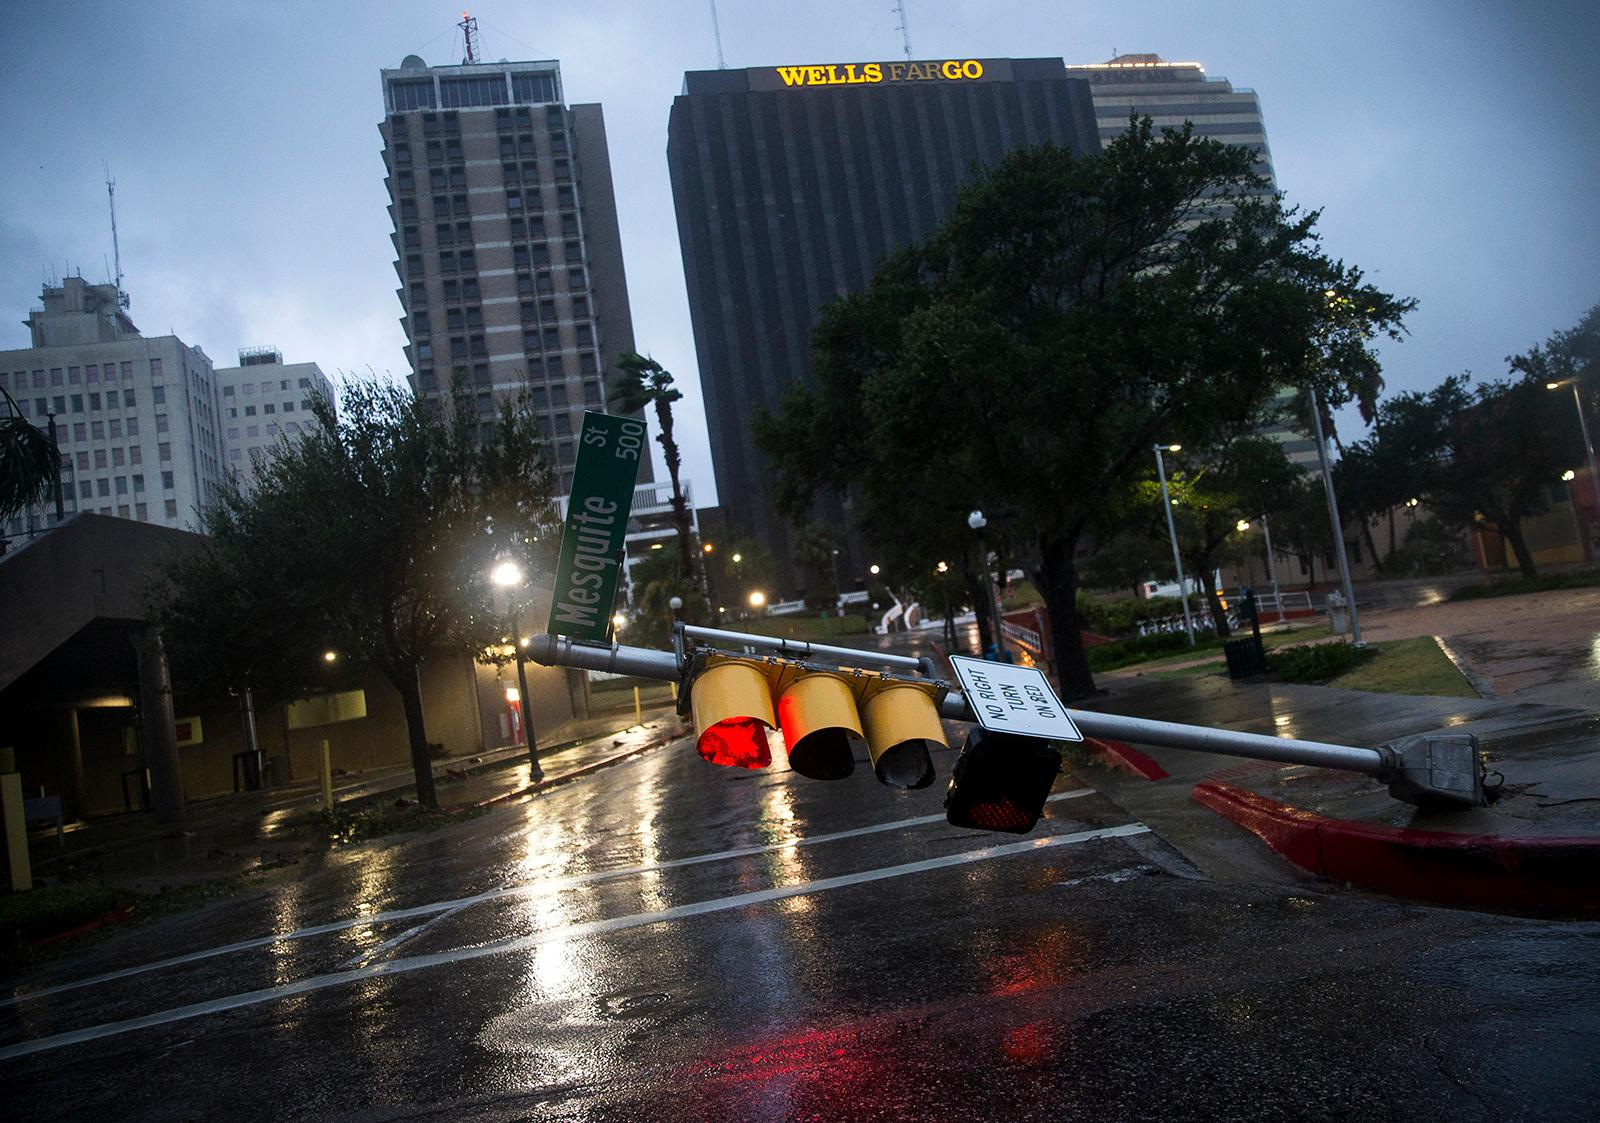 A damaged stop light blocks a street as Hurricane Harvey makes landfall in Corpus Christi, Texas, on Friday, Aug. 25, 2017. Hurricane Harvey smashed into Texas late Friday, lashing a wide swath of the Gulf Coast with strong winds and torrential rain from the fiercest hurricane to hit the U.S. in more than a decade.  (Nick Wagner/Austin American-Statesman via AP)